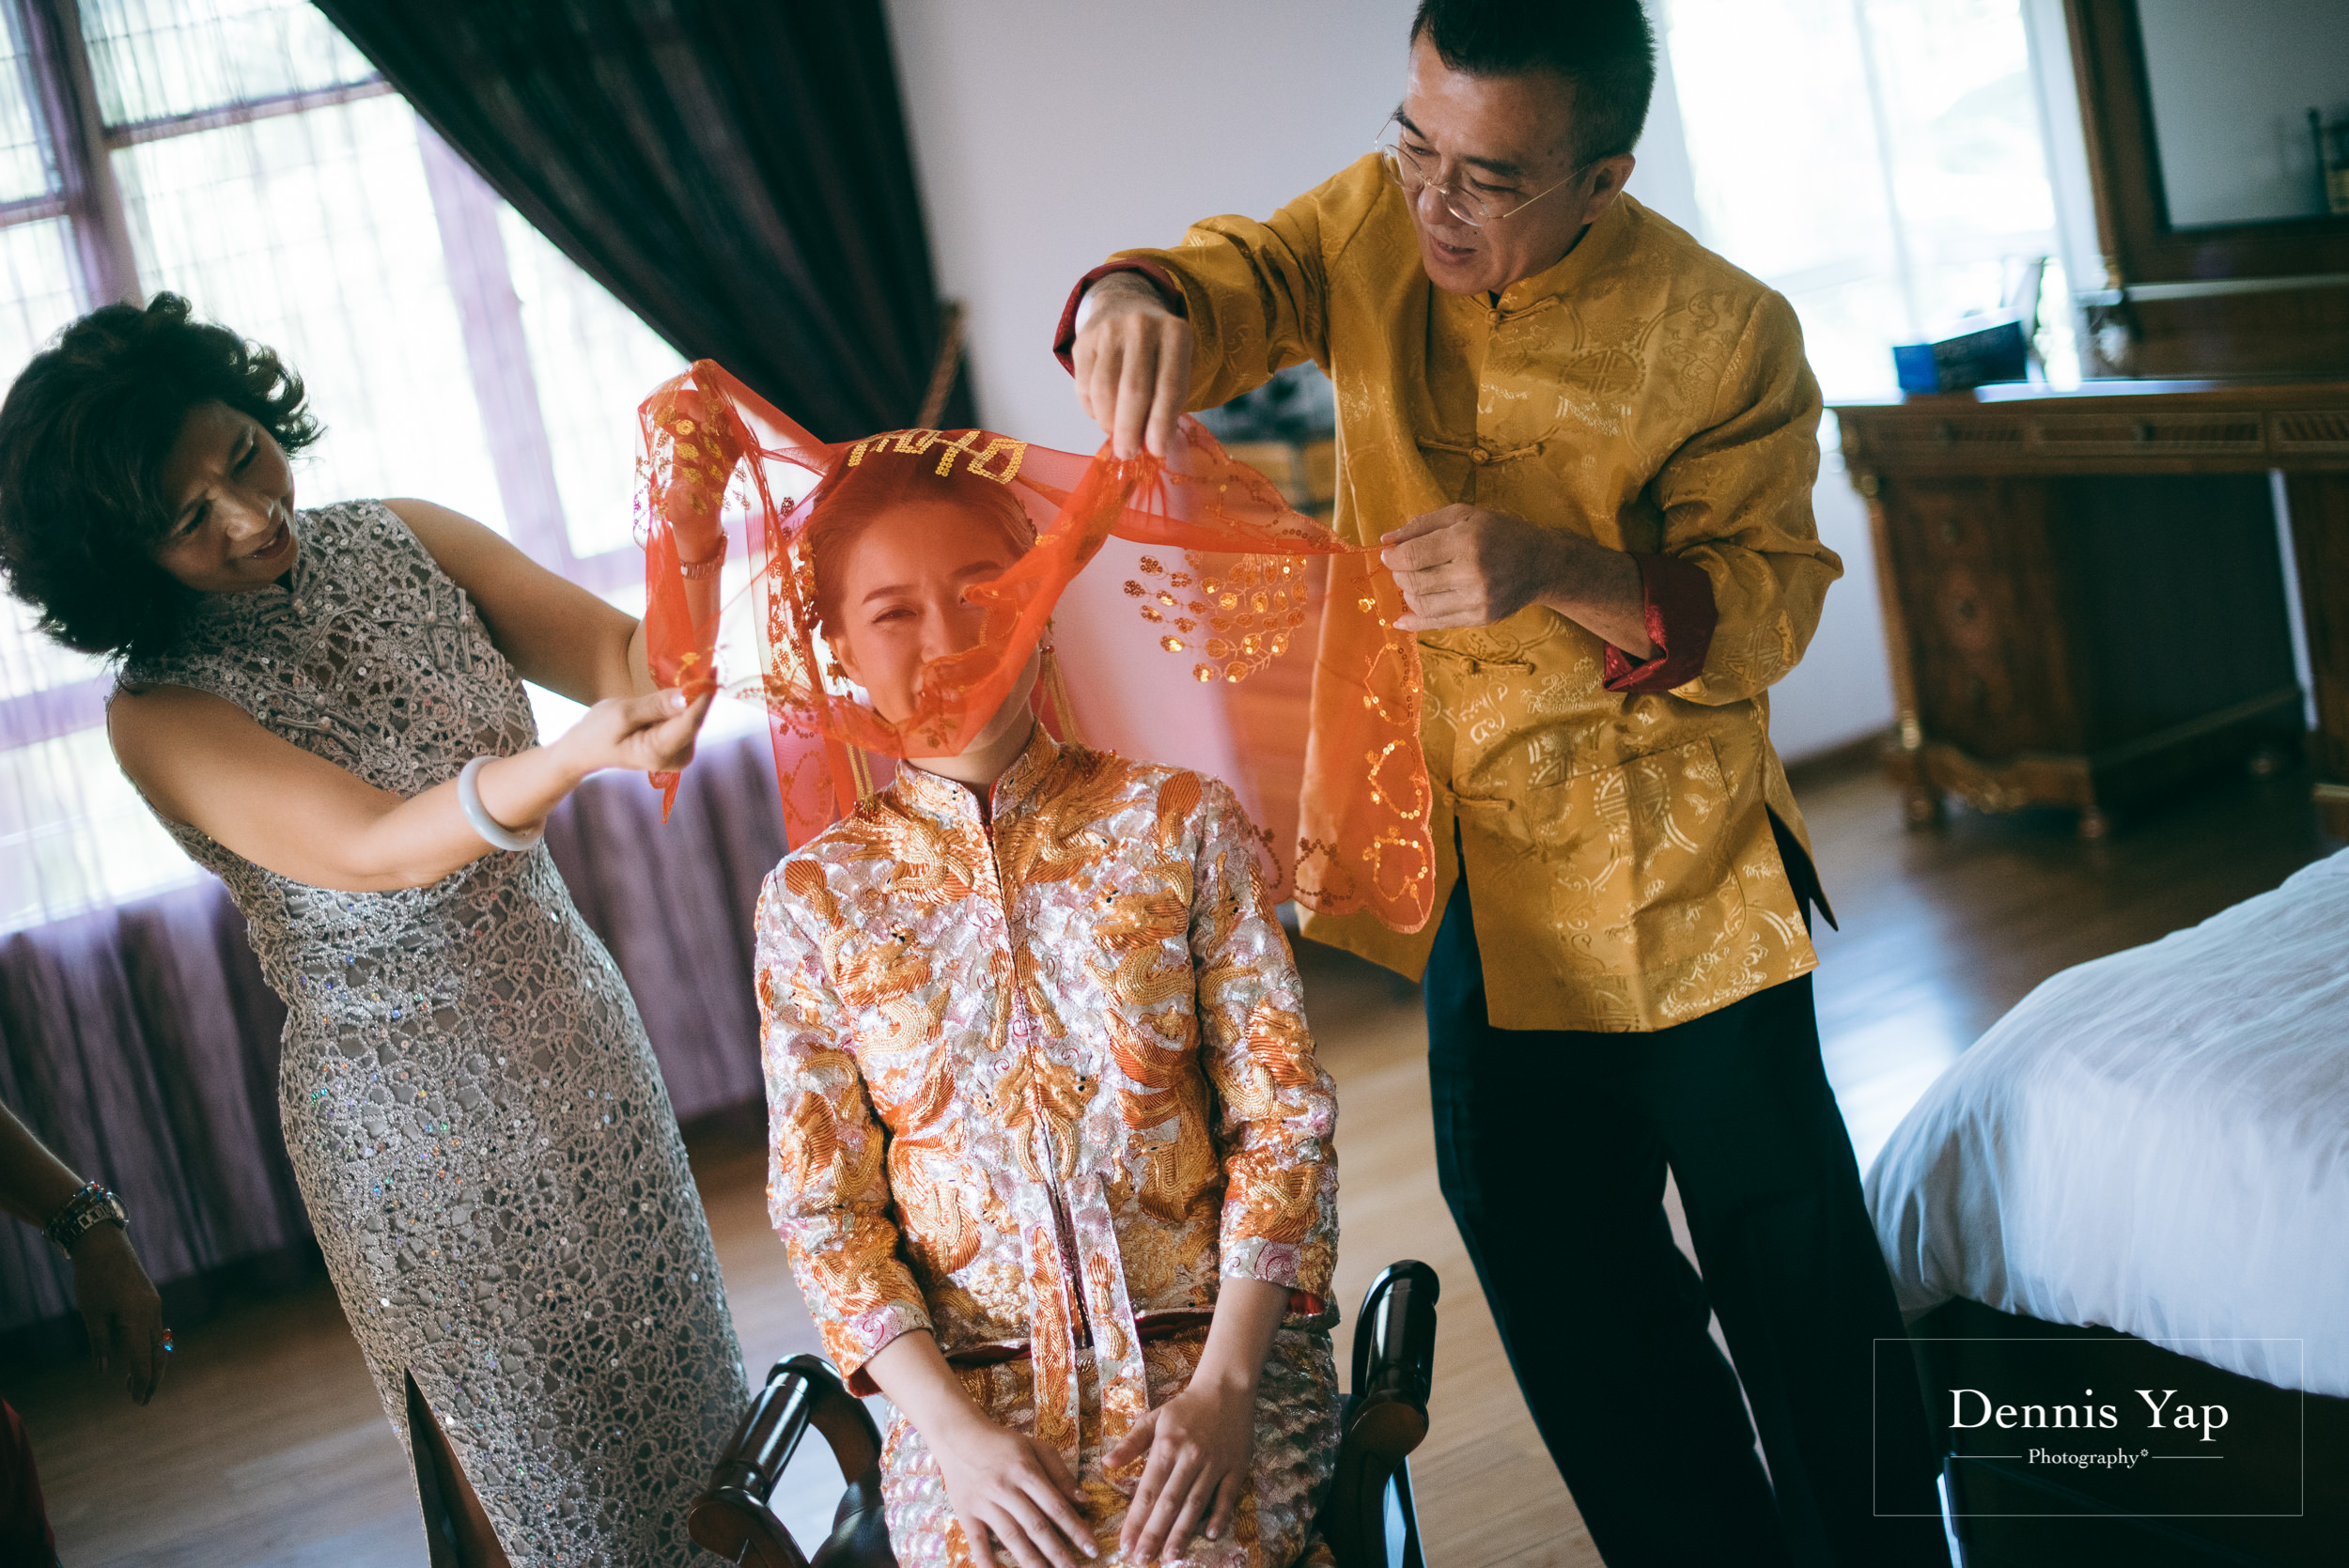 bobby fiona dennis yap photography malaysia wedding photographer chinese traditional-71.jpg